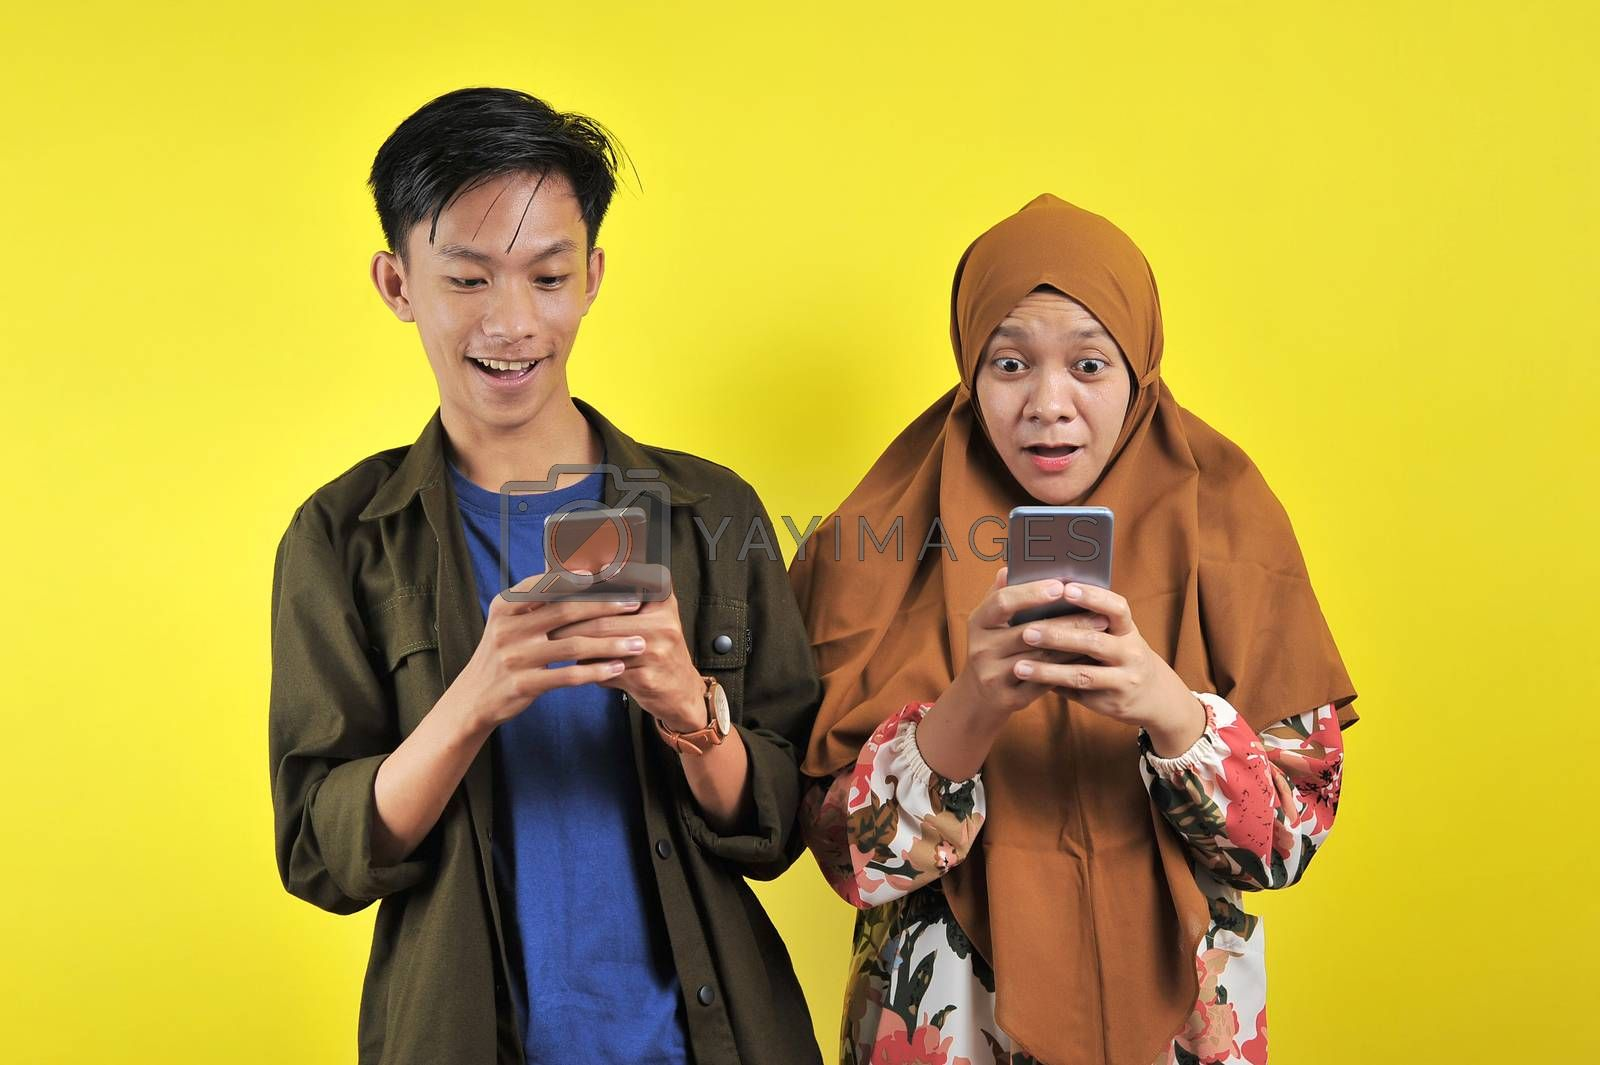 Woman and Young man, shock looking at smartphone display with positive emotion facial expression isolated yellow background